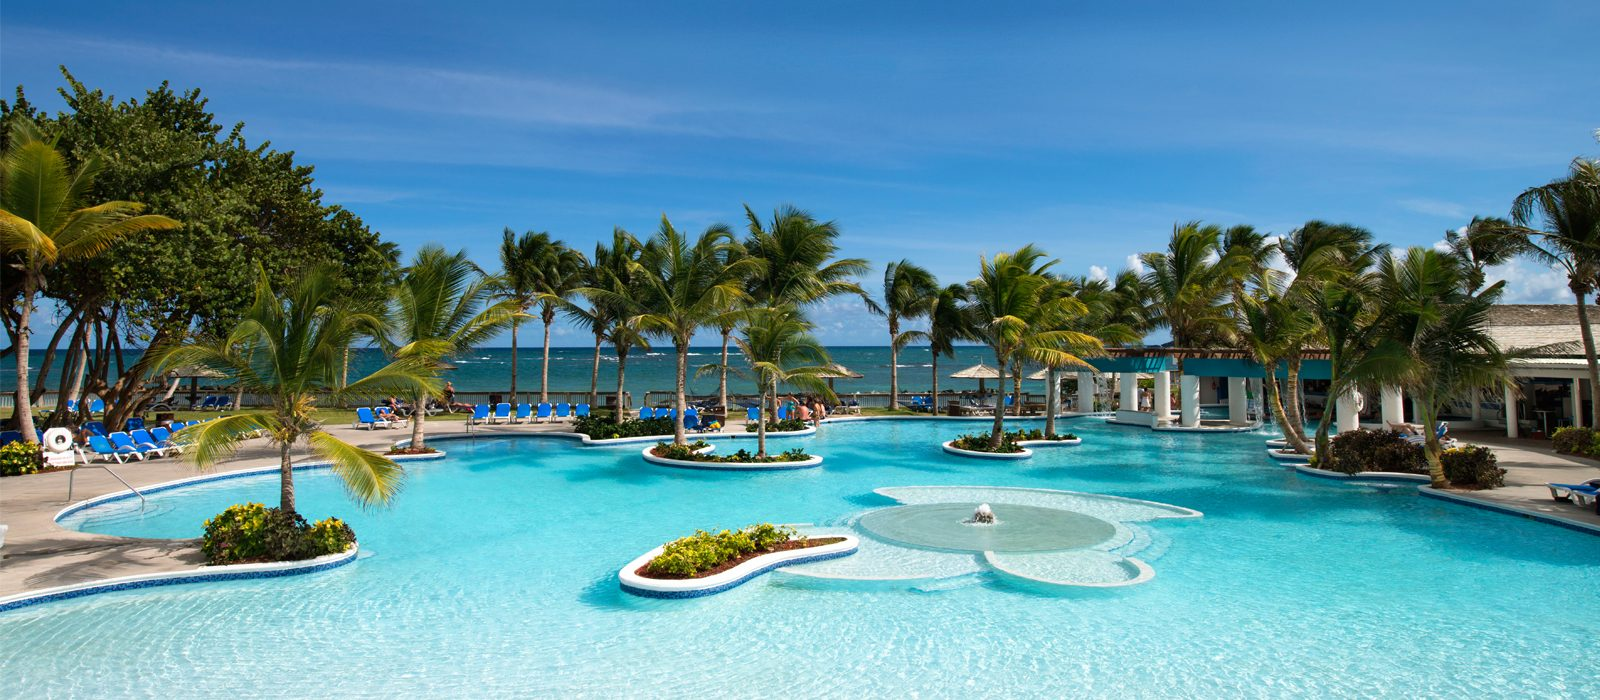 Luxury St Lucia Holiday Packages Coconut Bay Beach Resort And Spa Header